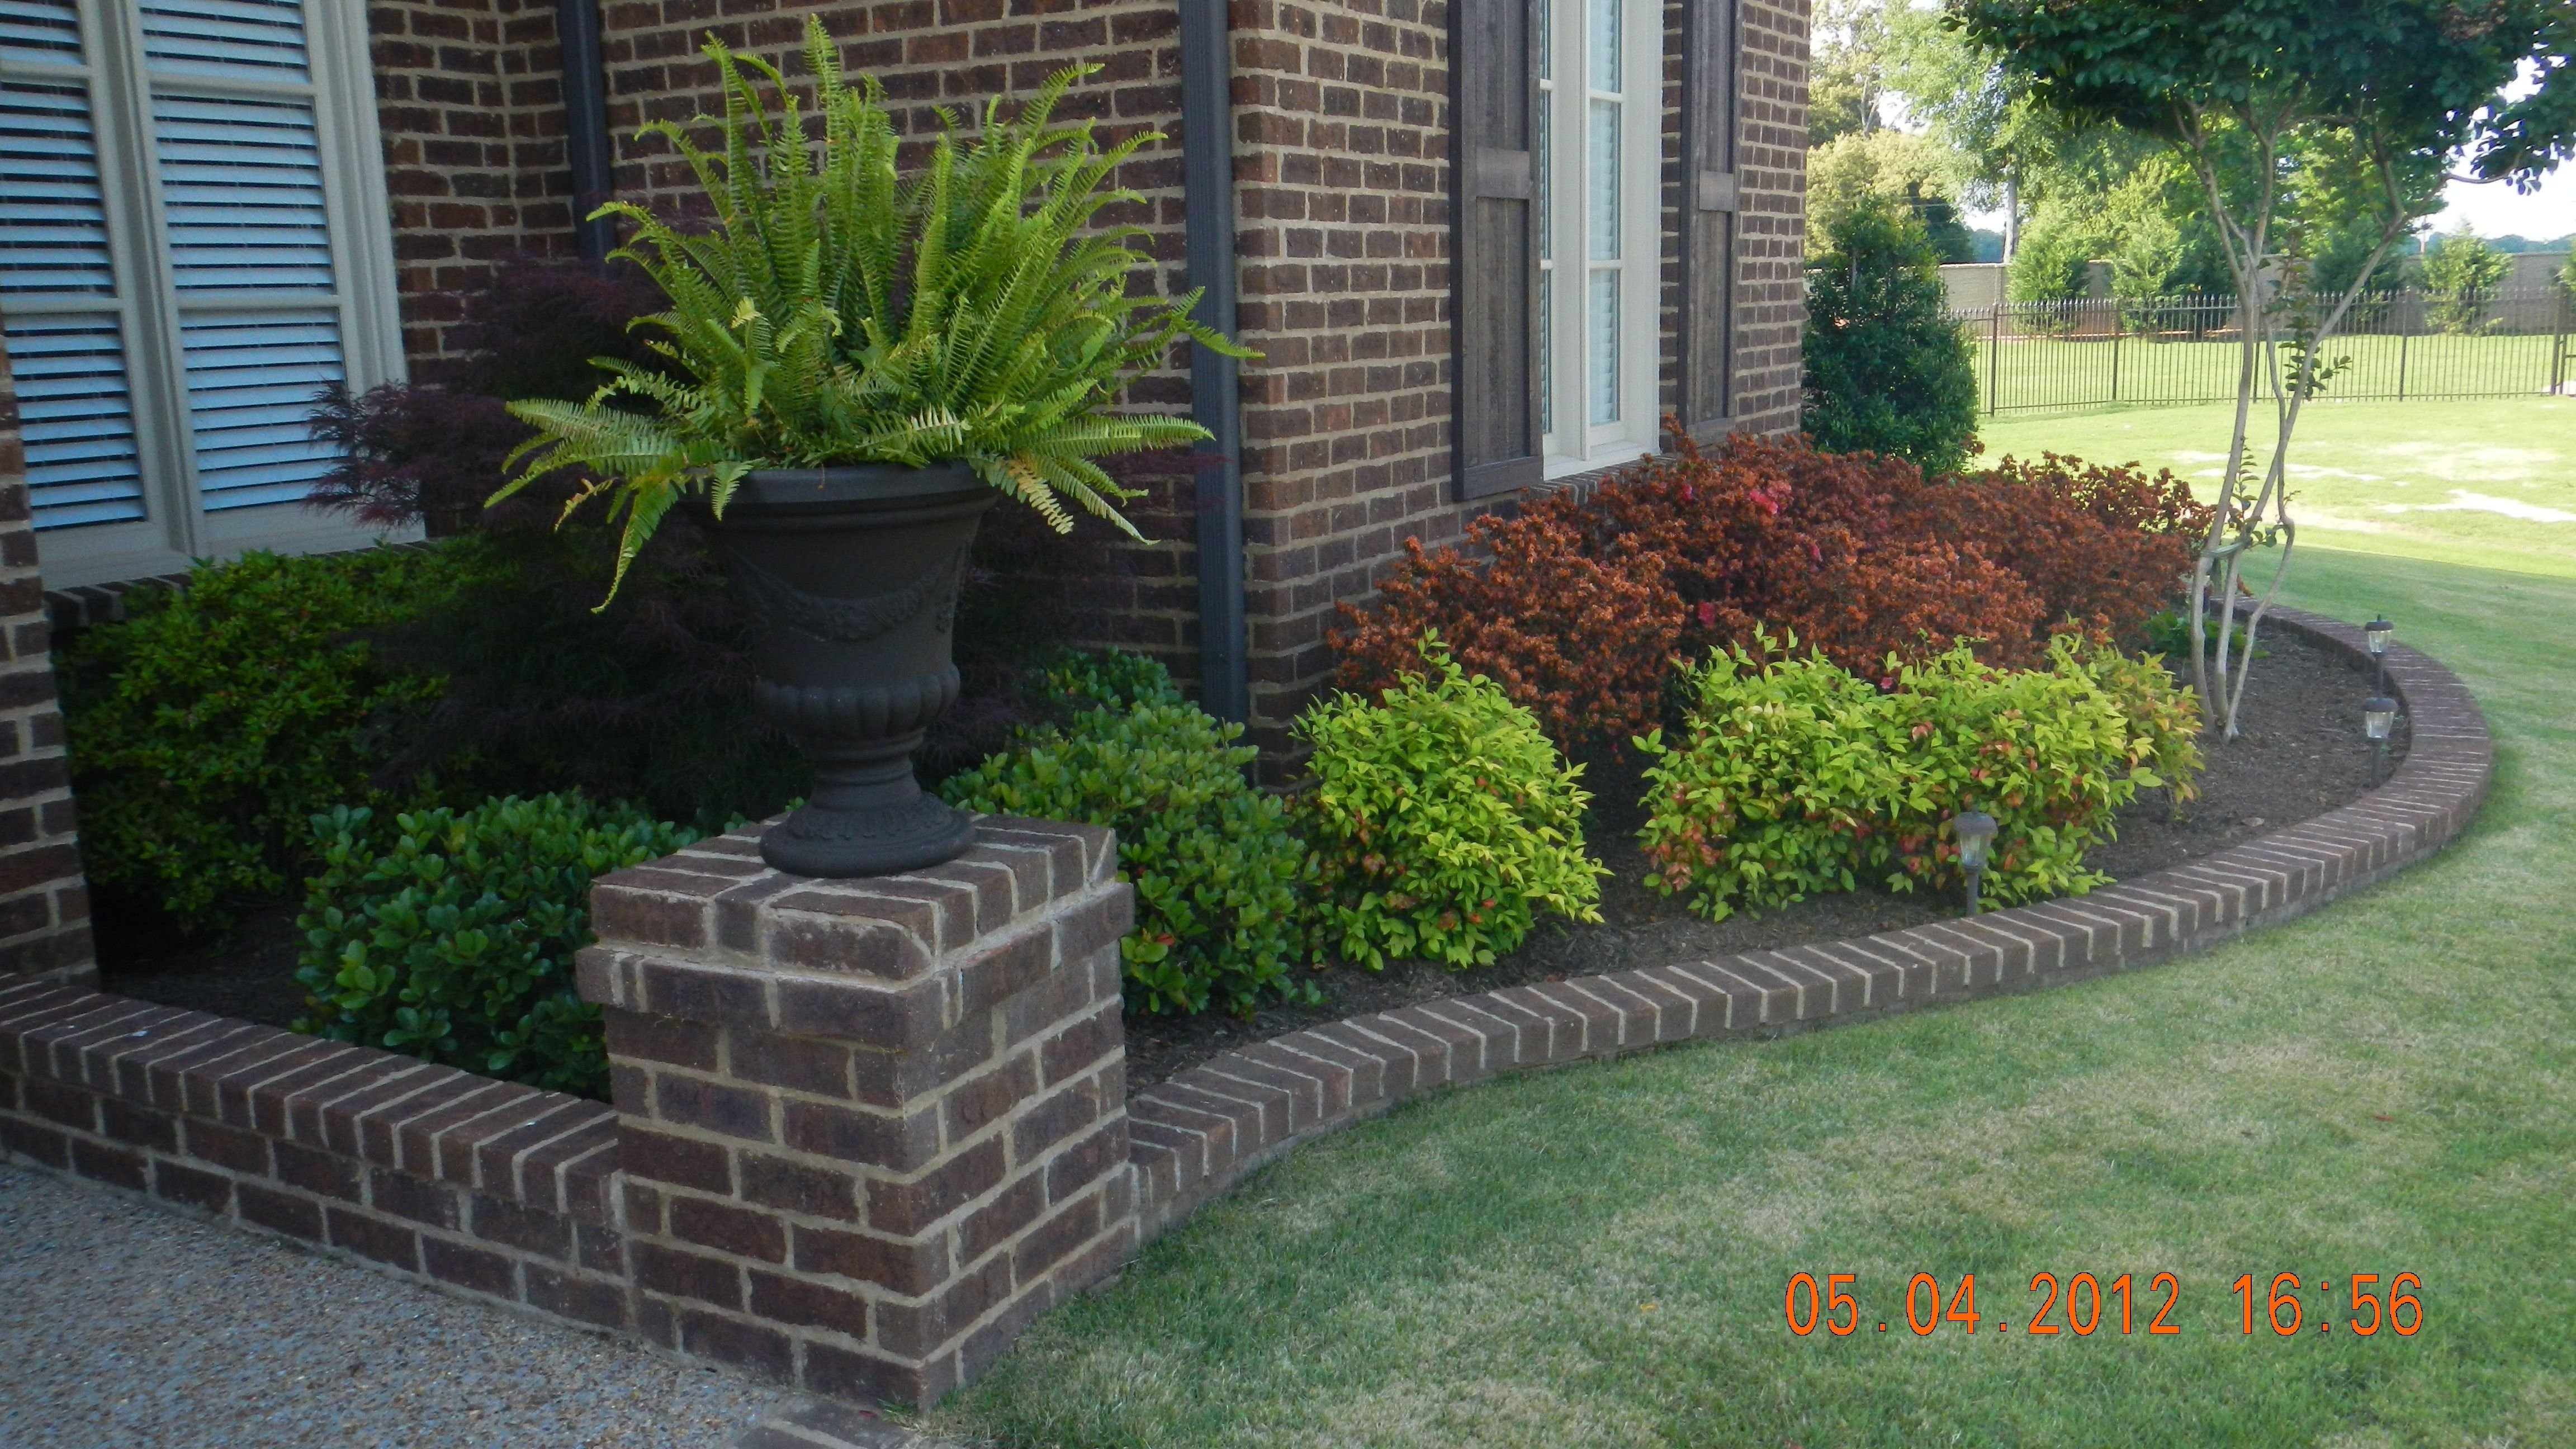 10 Lovely Landscaping Ideas For Front Yards low maintenance front yard landscaping low maintenance landscaping 2 2021